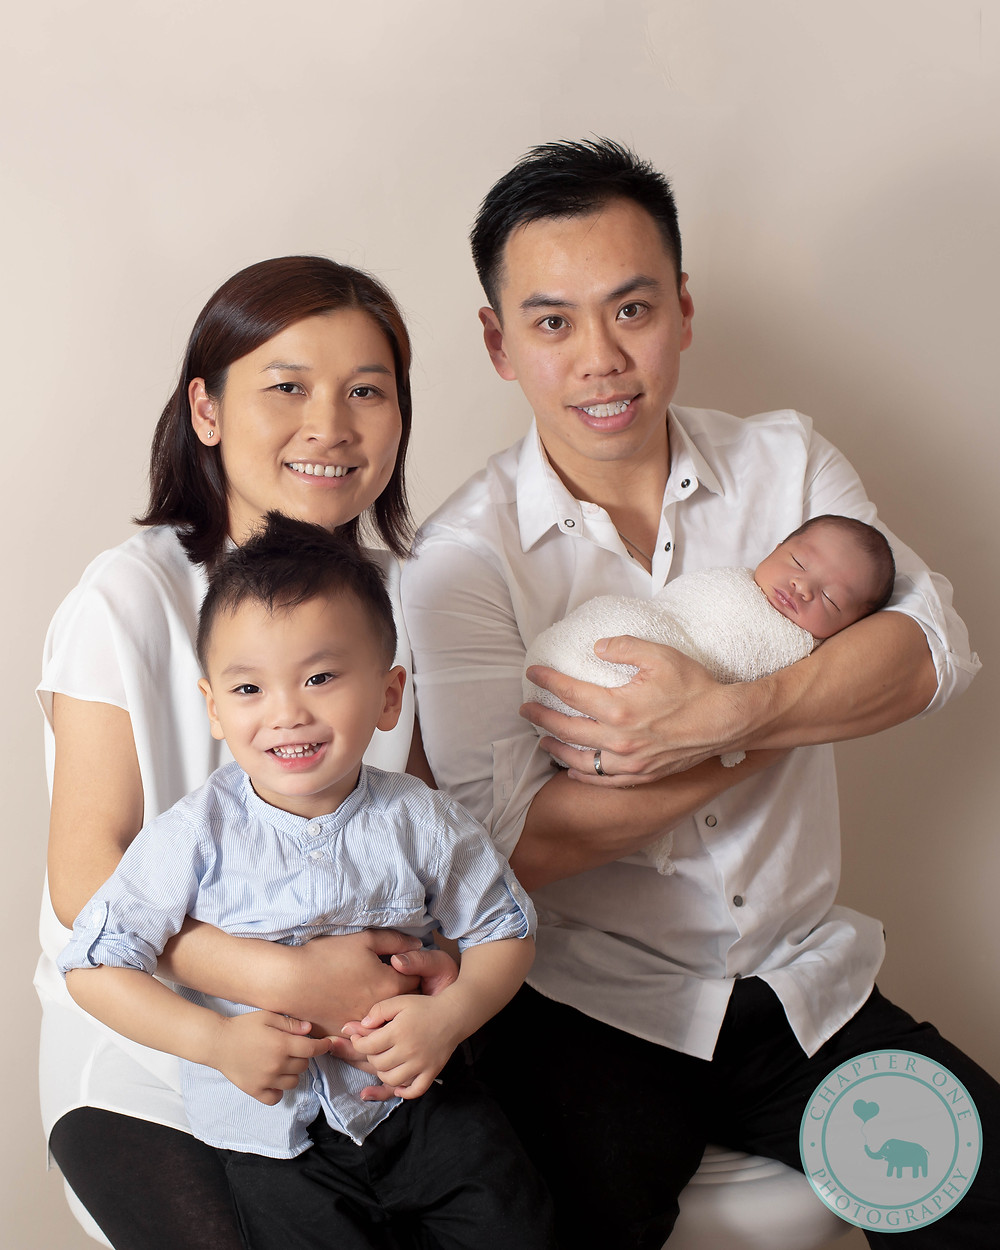 Newborn Family Photography baby and sibling 2 years